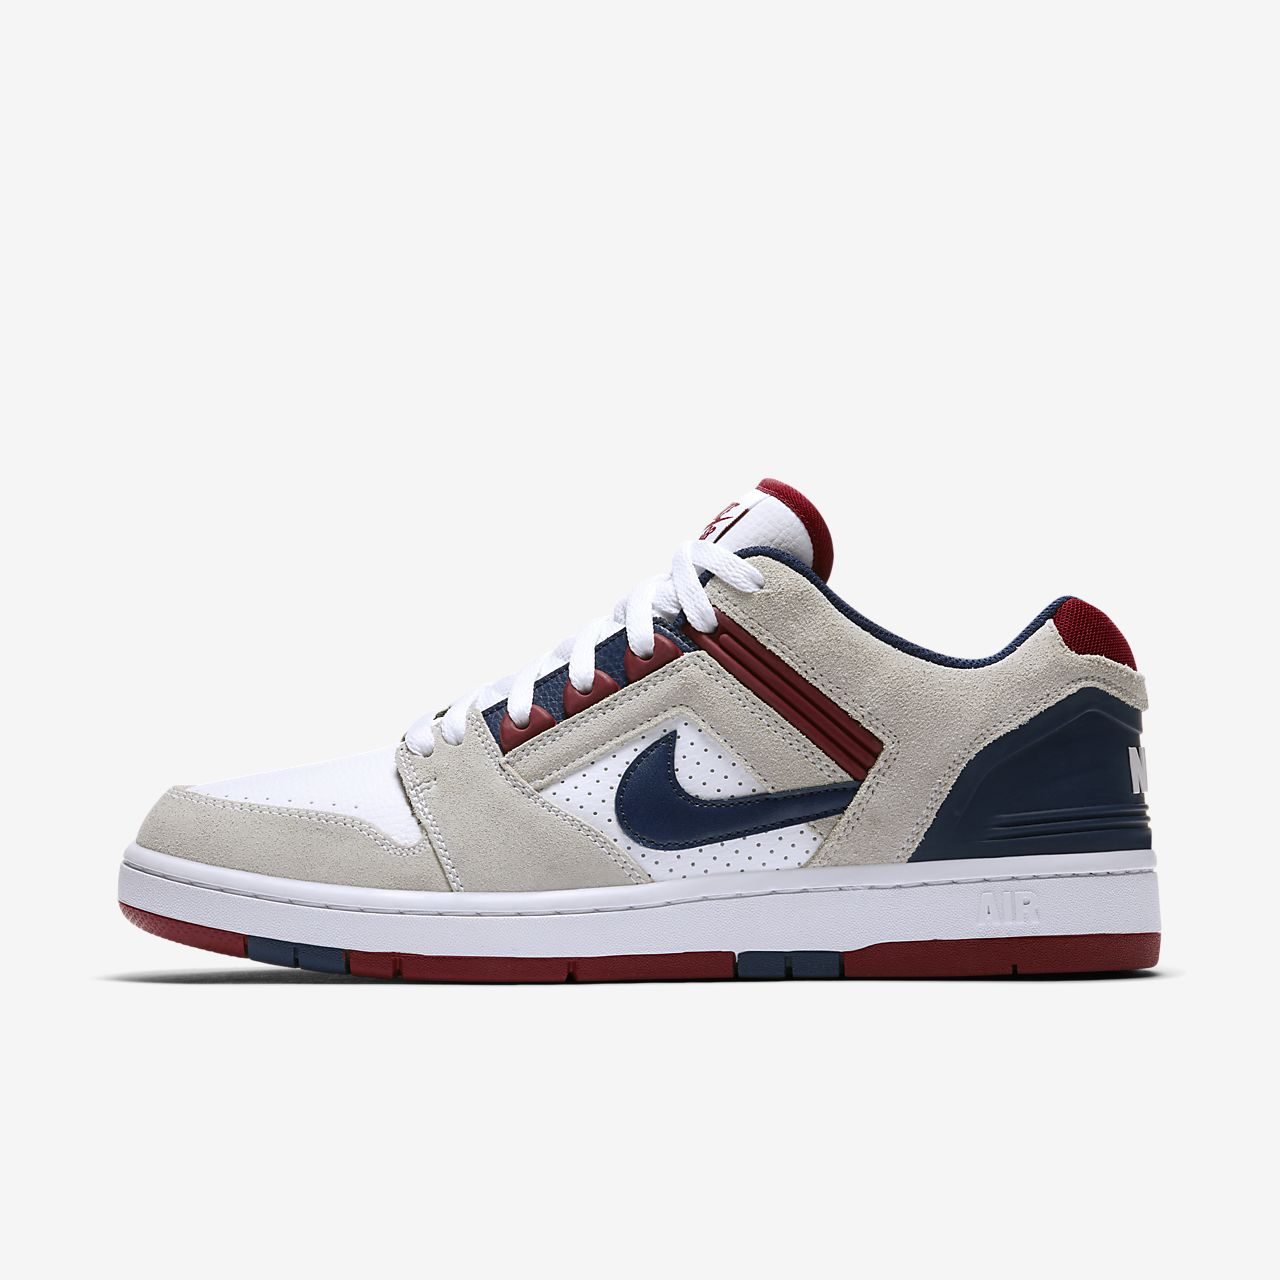 ... Chaussure de skateboard Nike SB Air Force II Low pour Homme